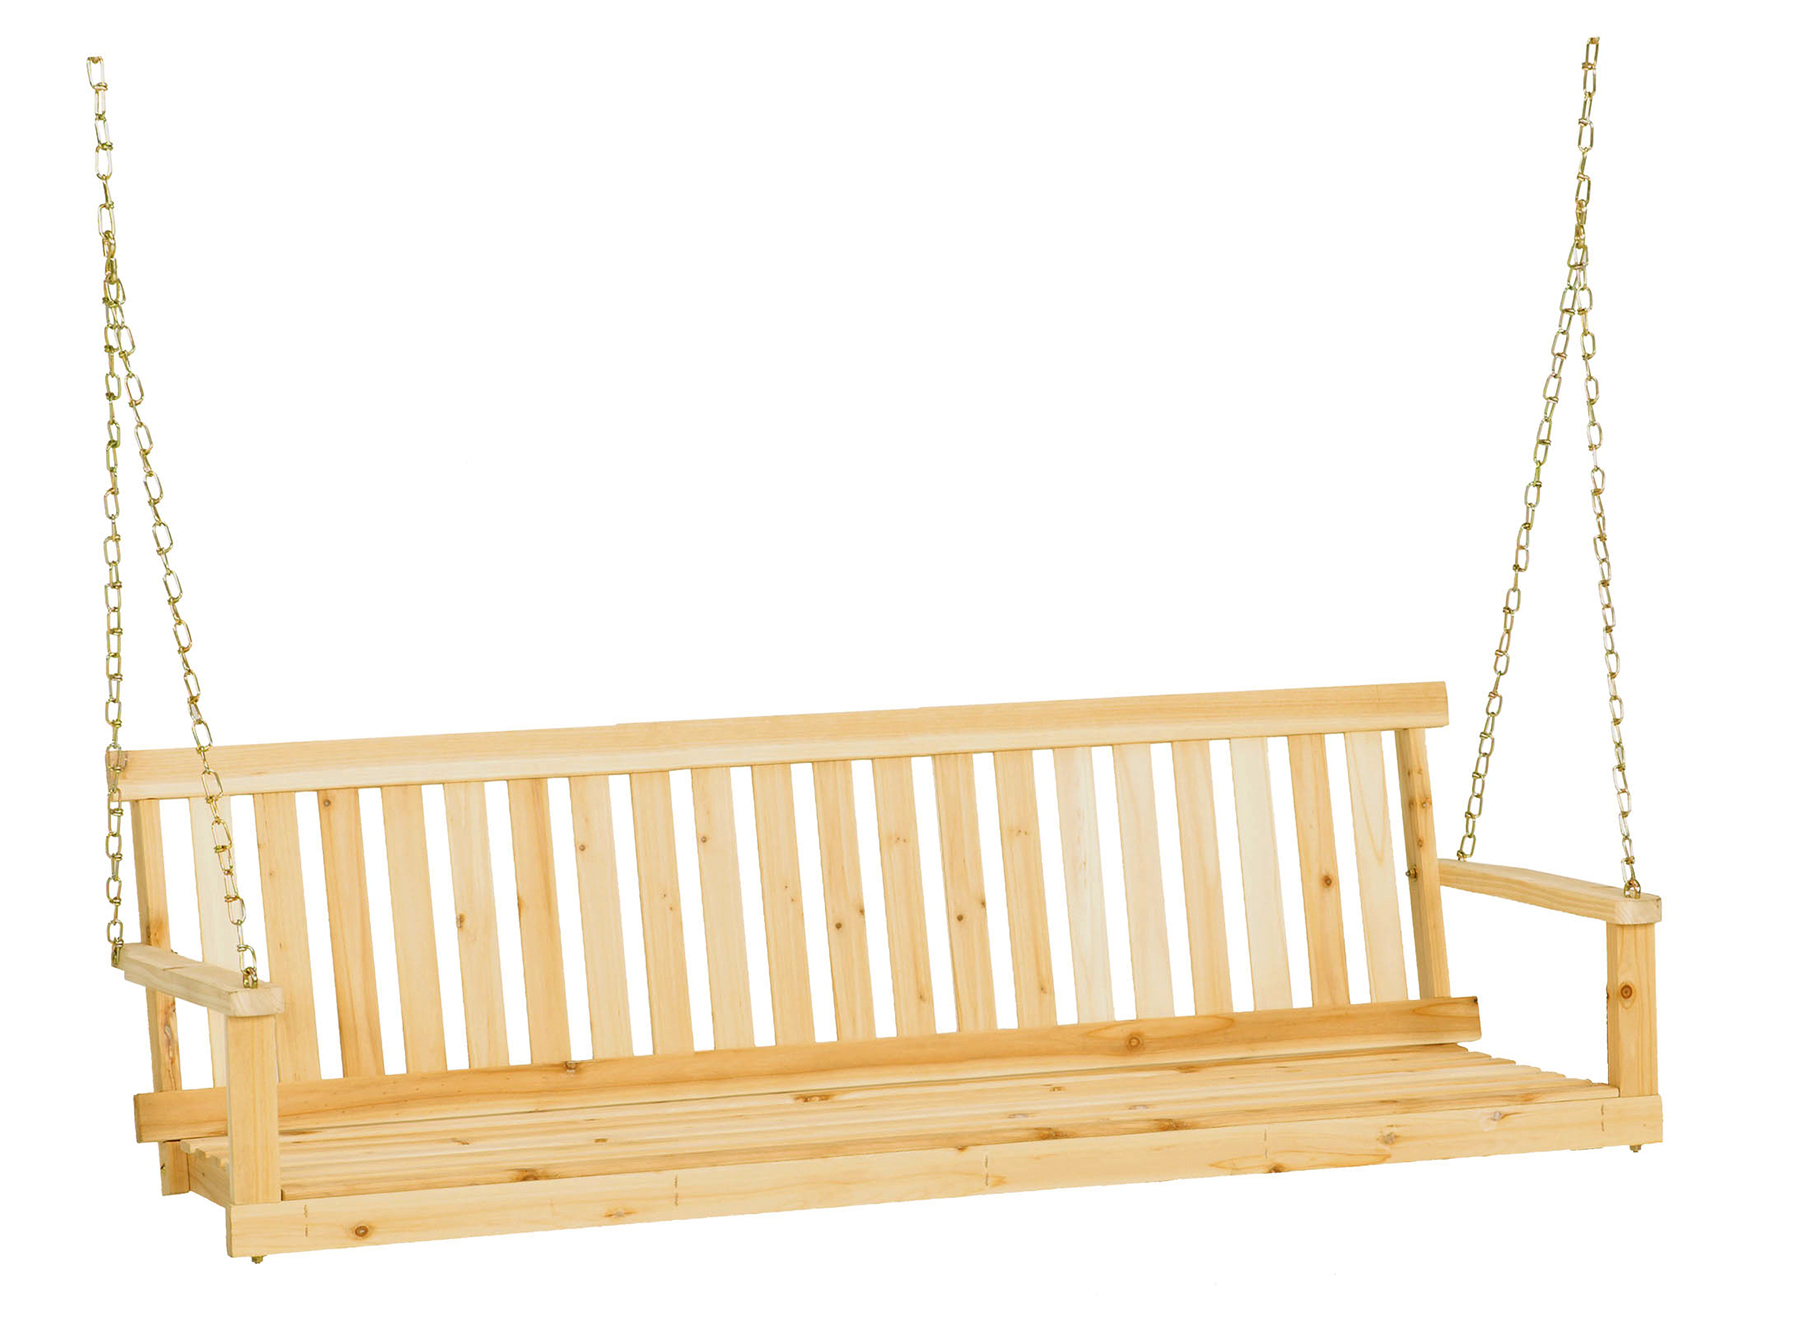 Jack Post Jennings 5' Swing With Chains – Walmart With 3 Person Natural Cedar Wood Outdoor Swings (View 21 of 25)